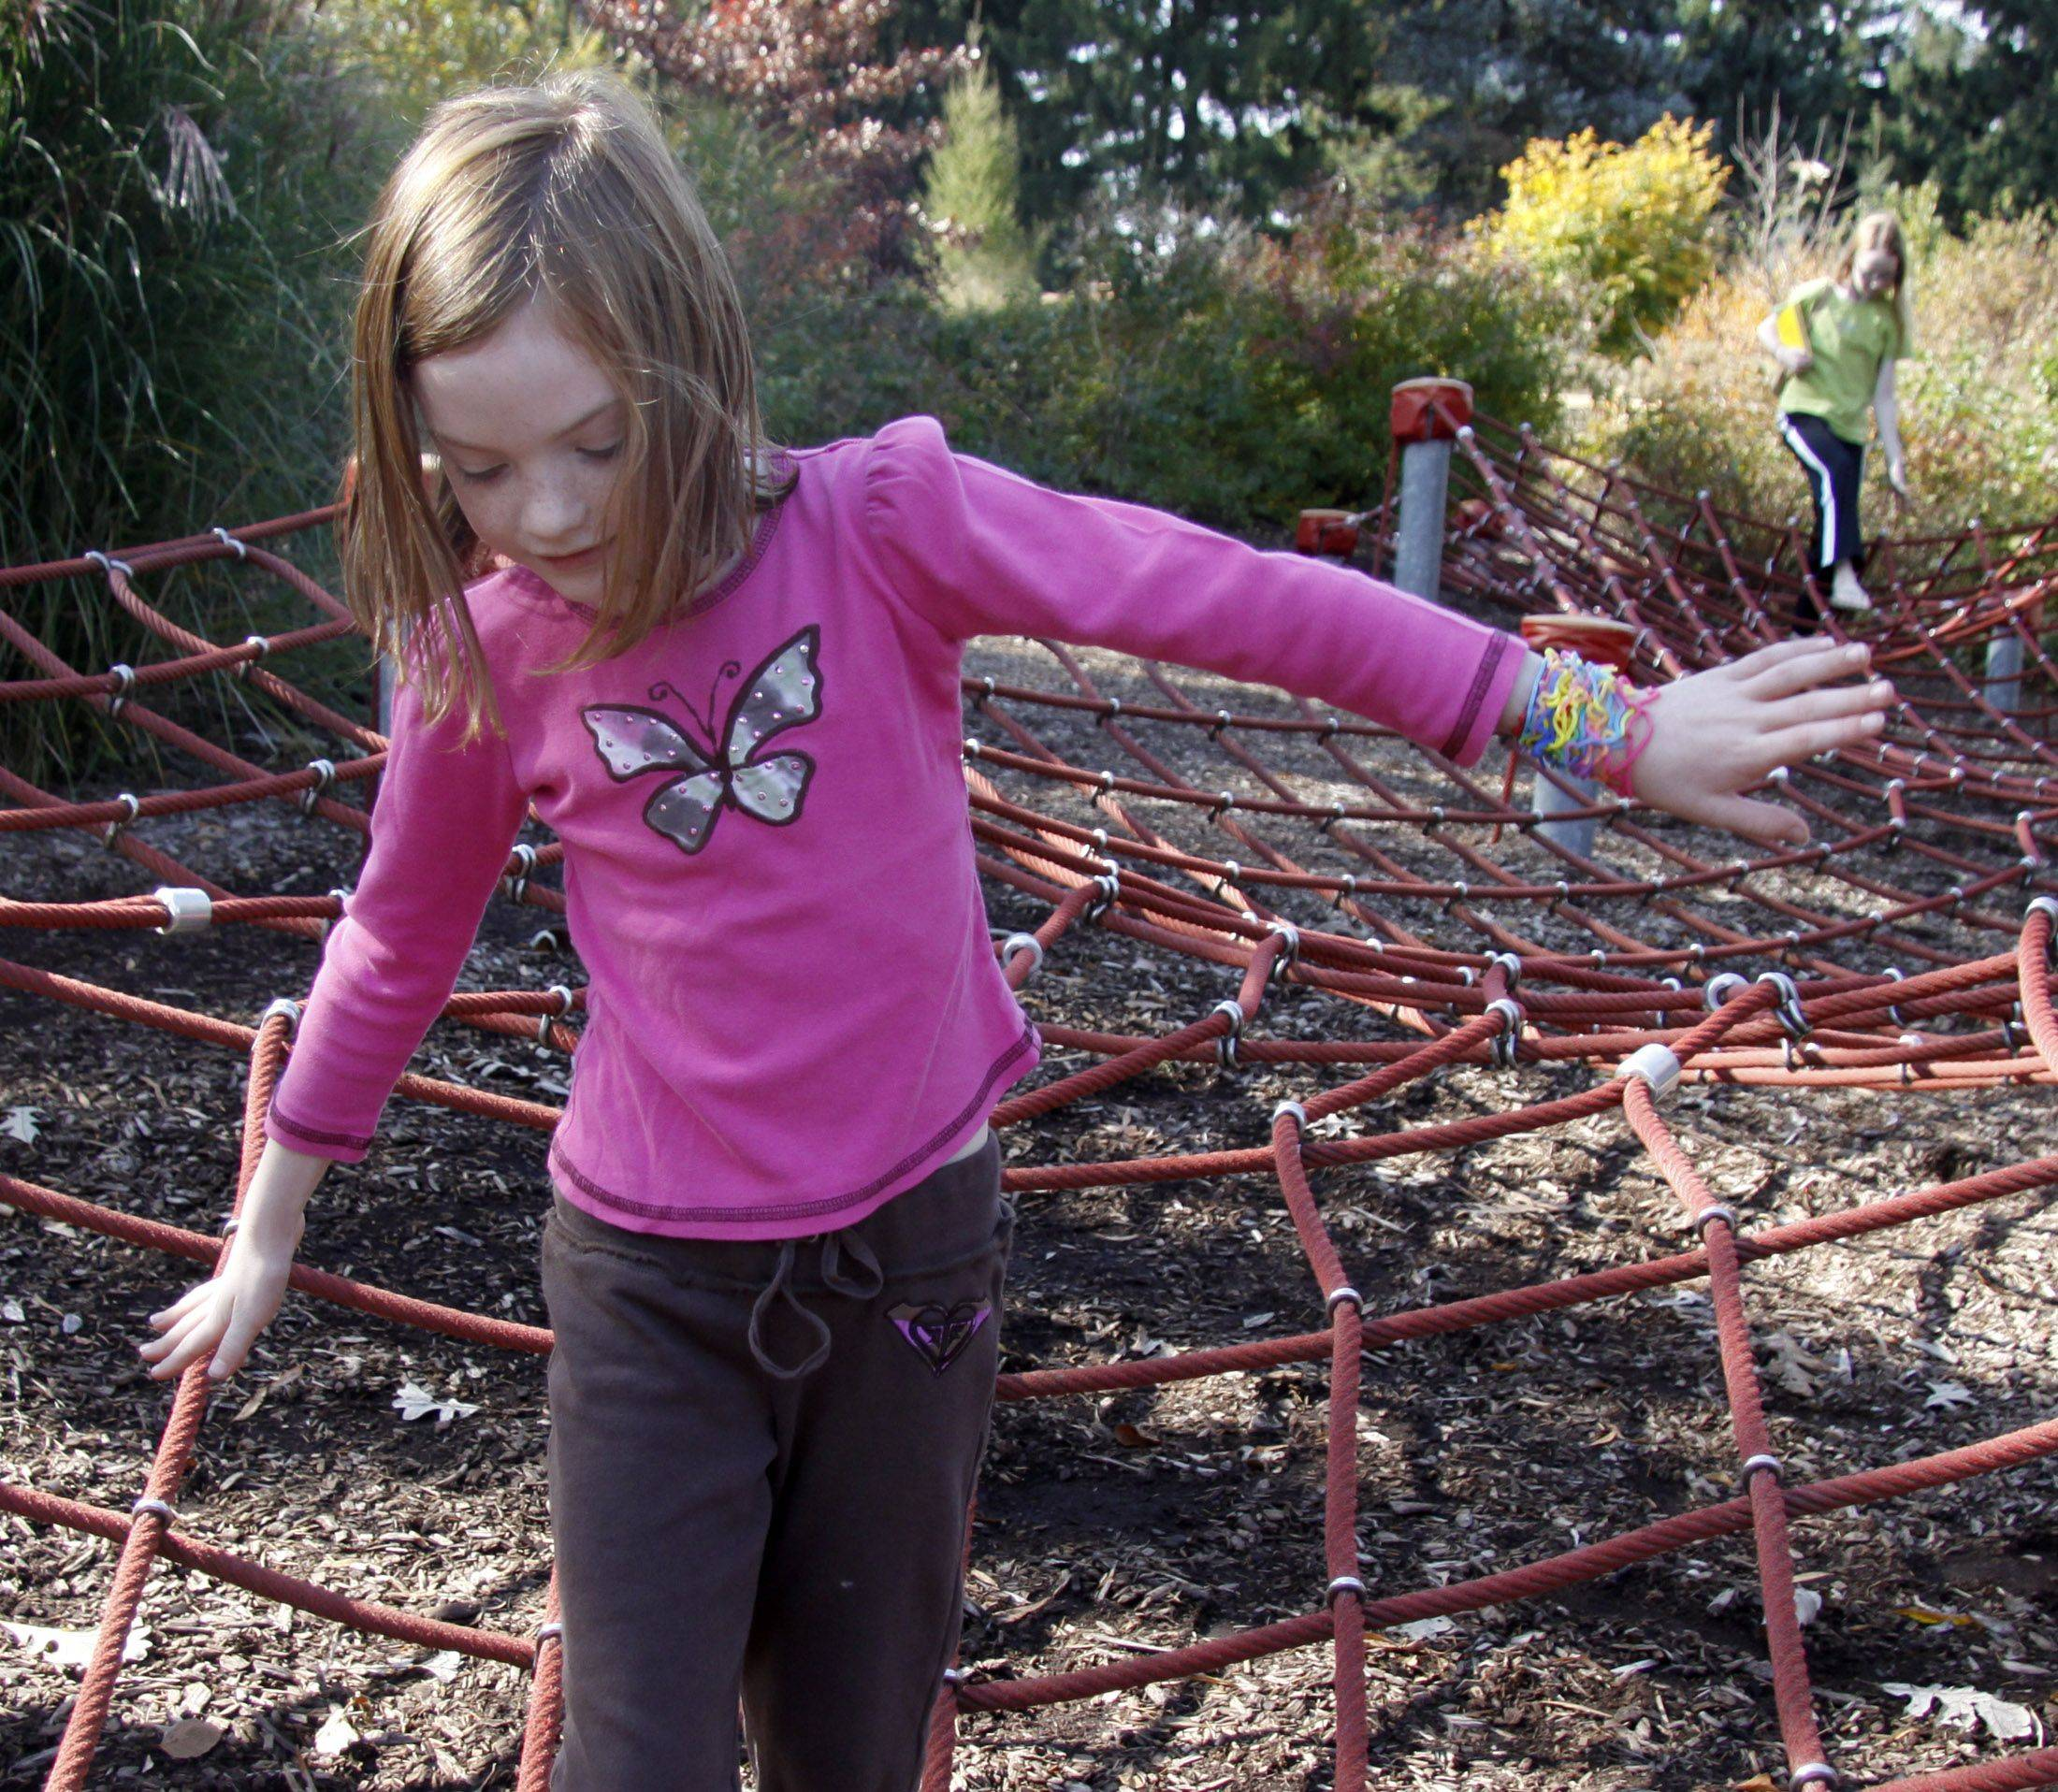 Maeve Seyer, 6, of LaGrange Park walks through a spider web in the kids area of the Morton Arboretum Sunday. The Arboretum held its Fall Festival which had a variety of activities and events for children to partake in.